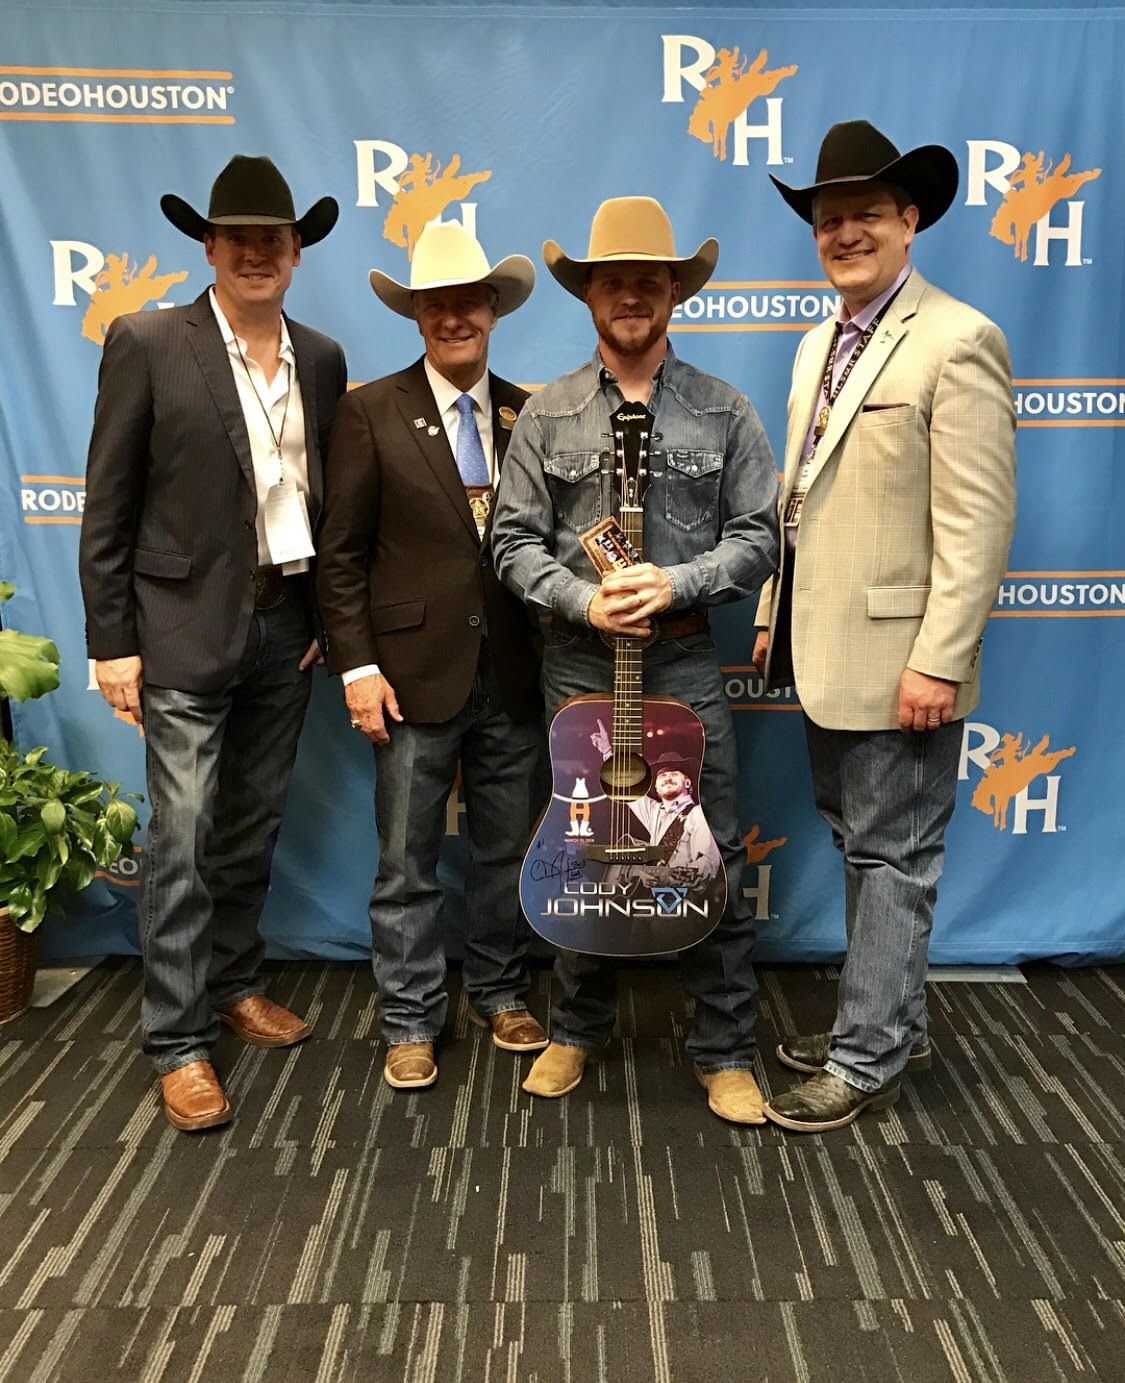 CODY JOHNSON BREAKS RECORDS AS THE ONLY UNSIGNED ARTIST IN HISTORY TO SELL OUT NRG STADIUM AT RODEOHOUSTON WITH OVER 74,000 TICKETS SOLD